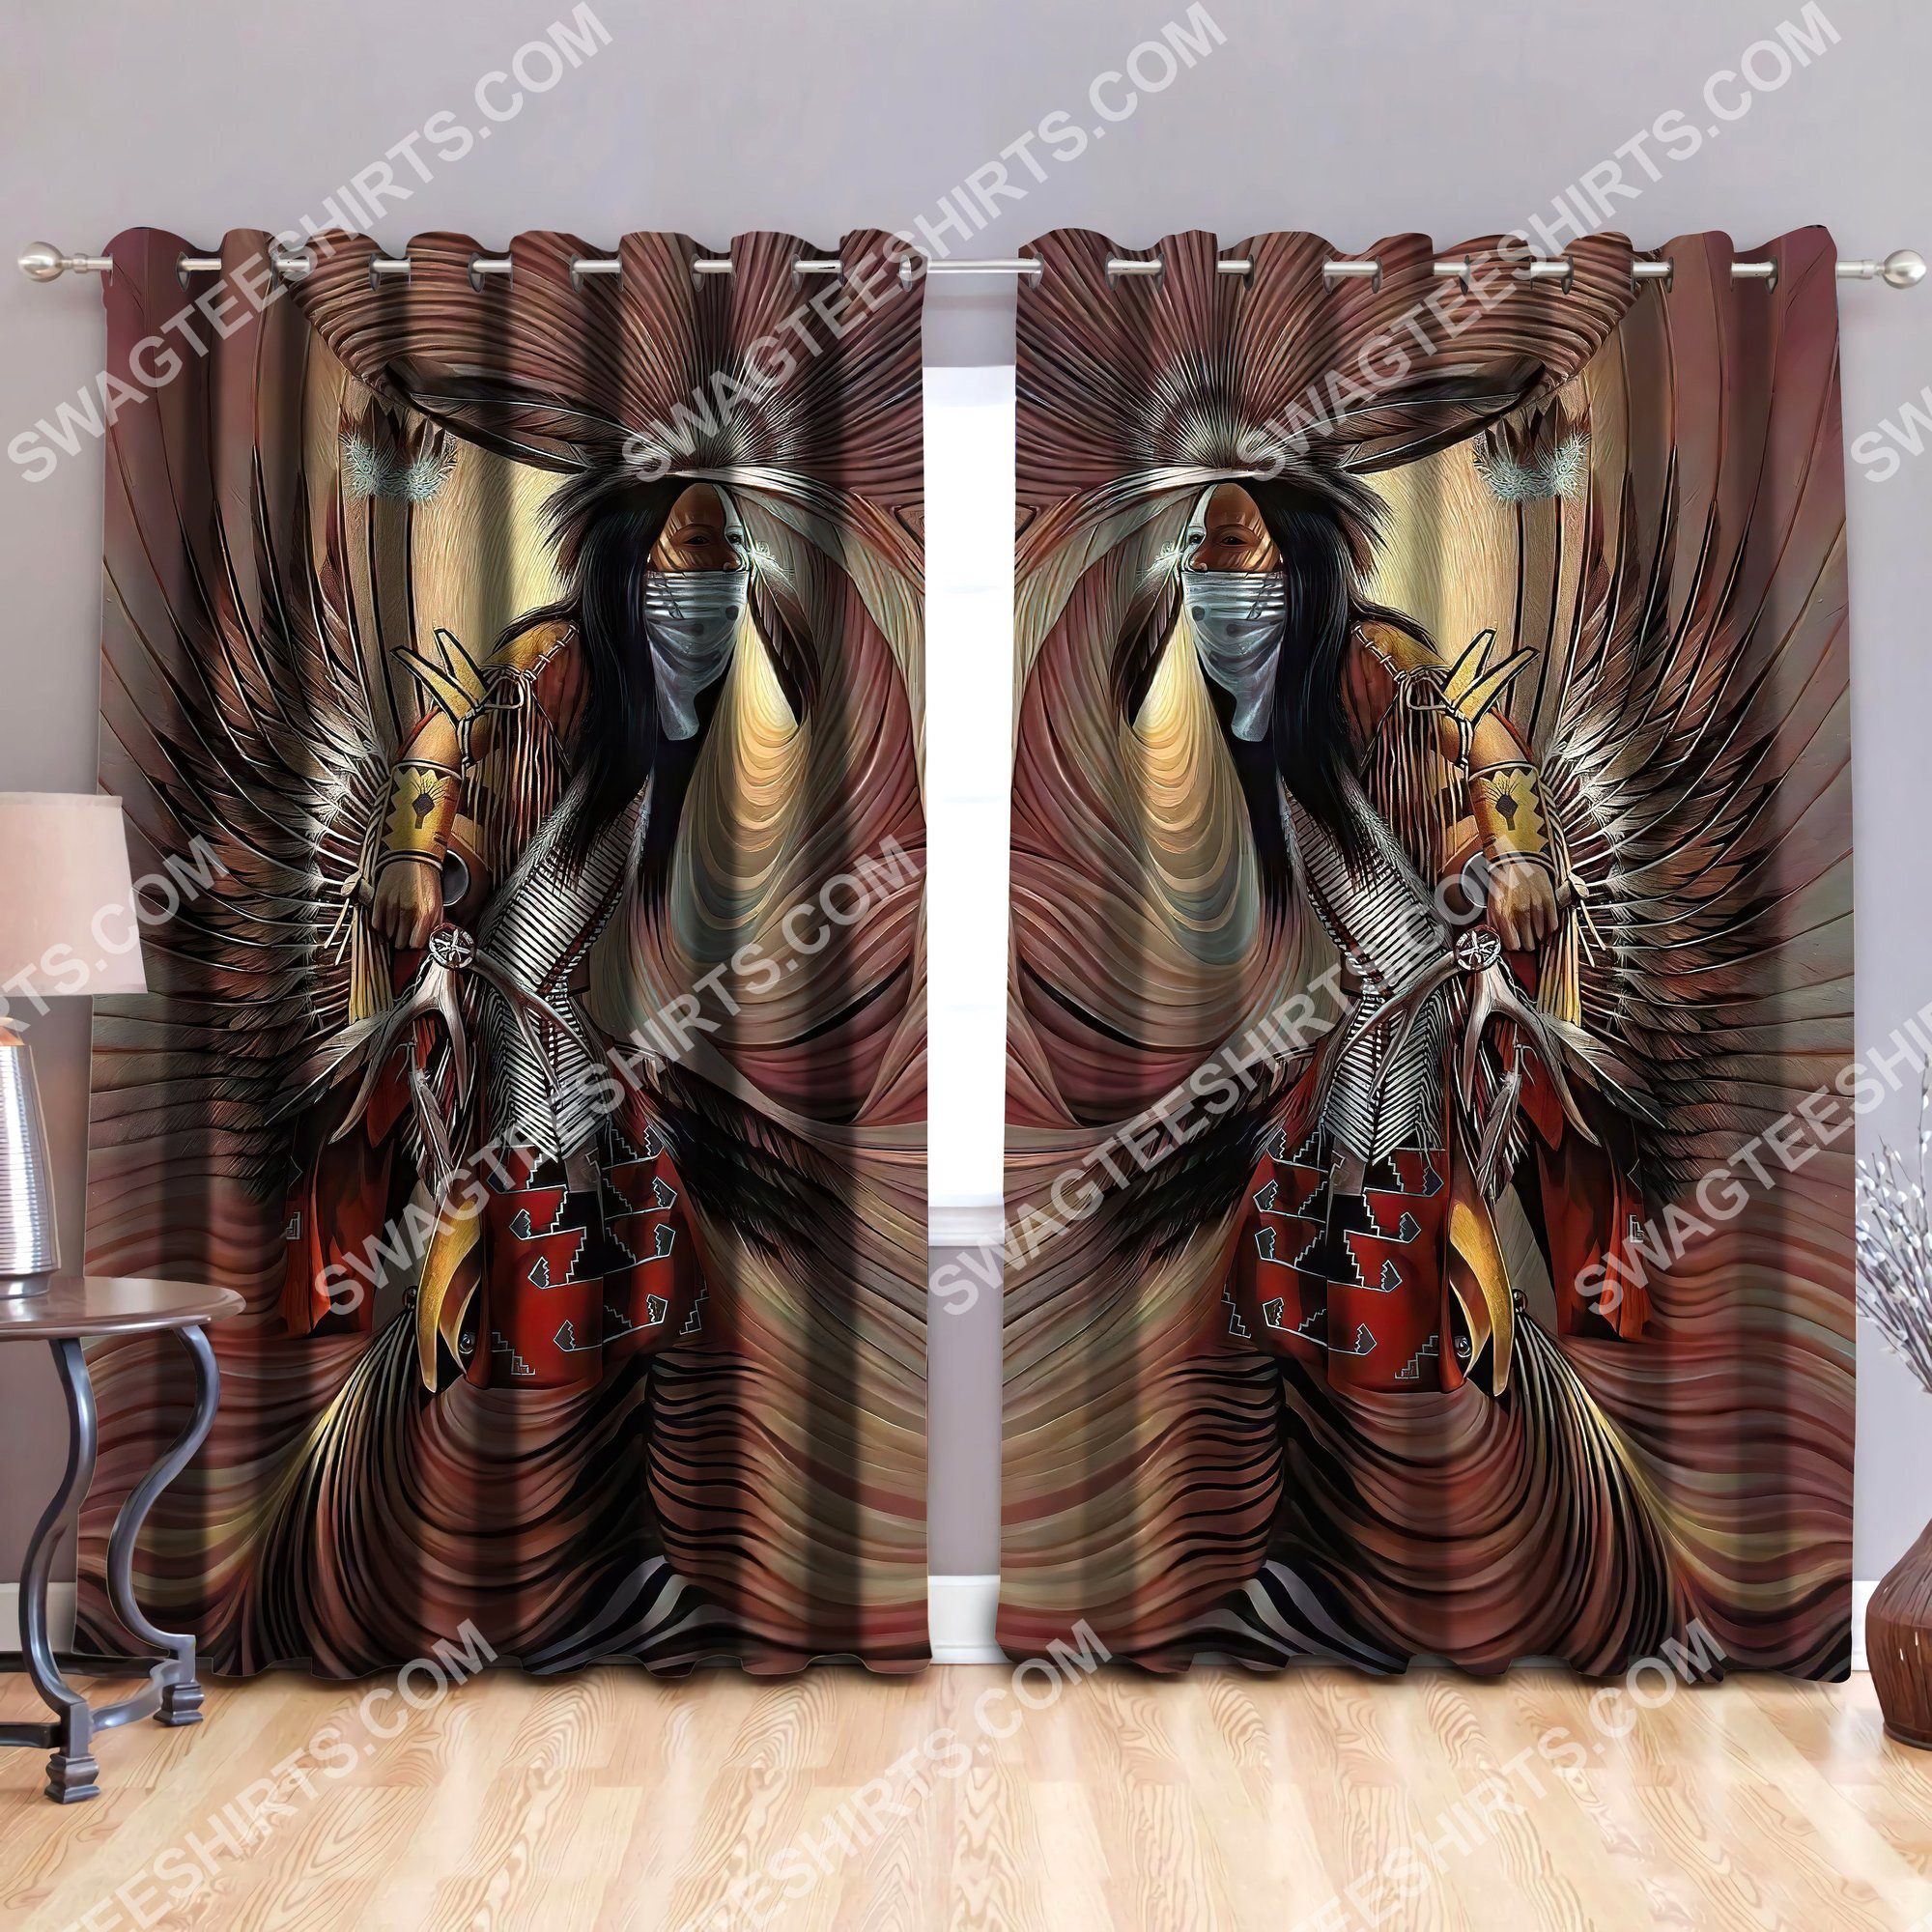 native american man all over printed window curtains 2(1)